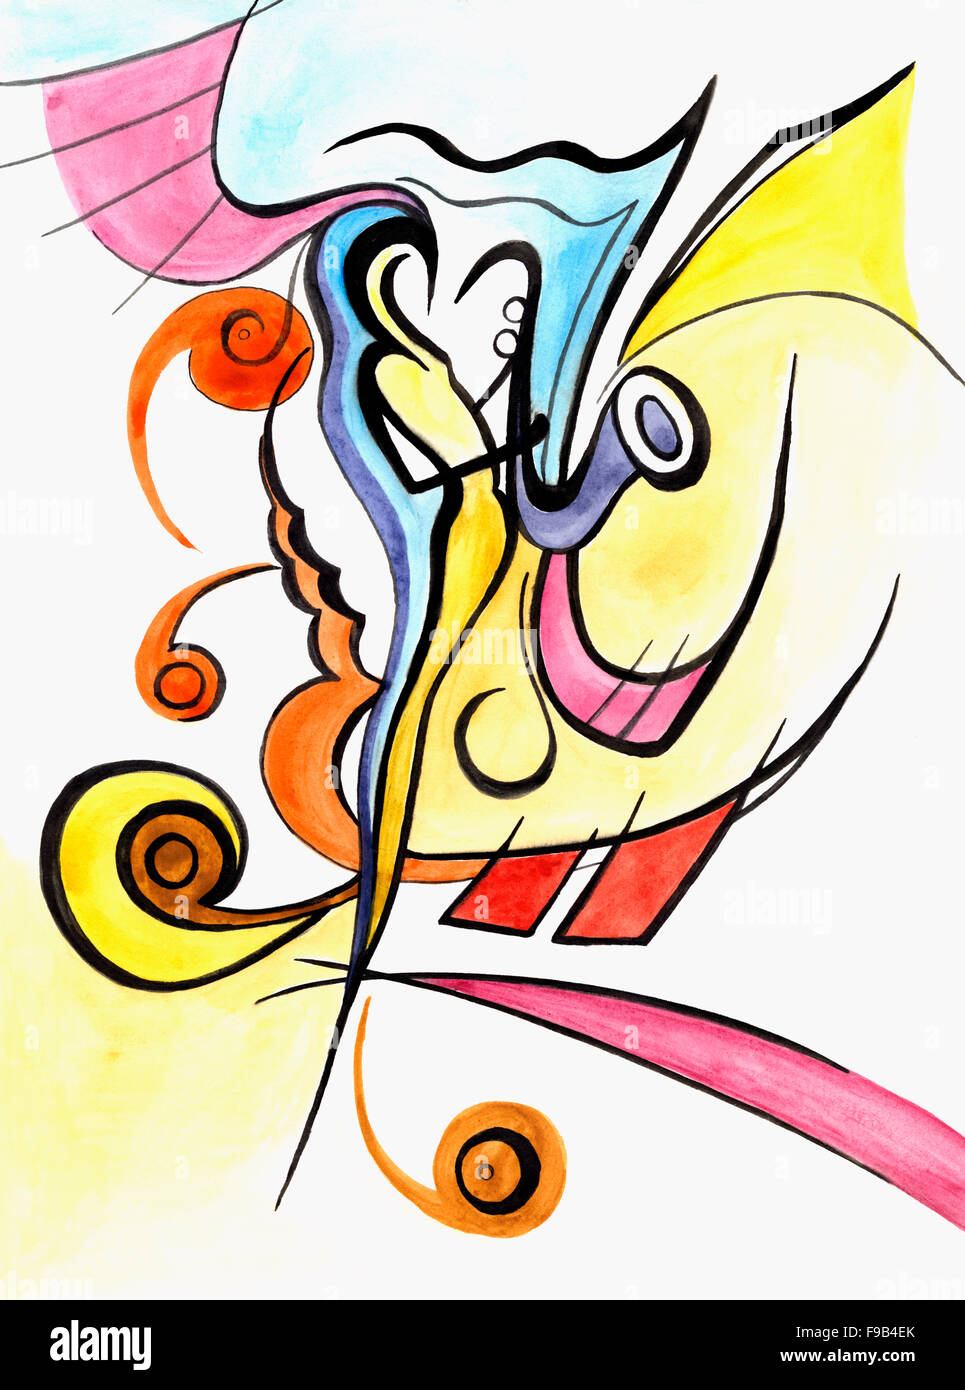 Abstract Artwork With Different Shapes And Lines Stock Photo